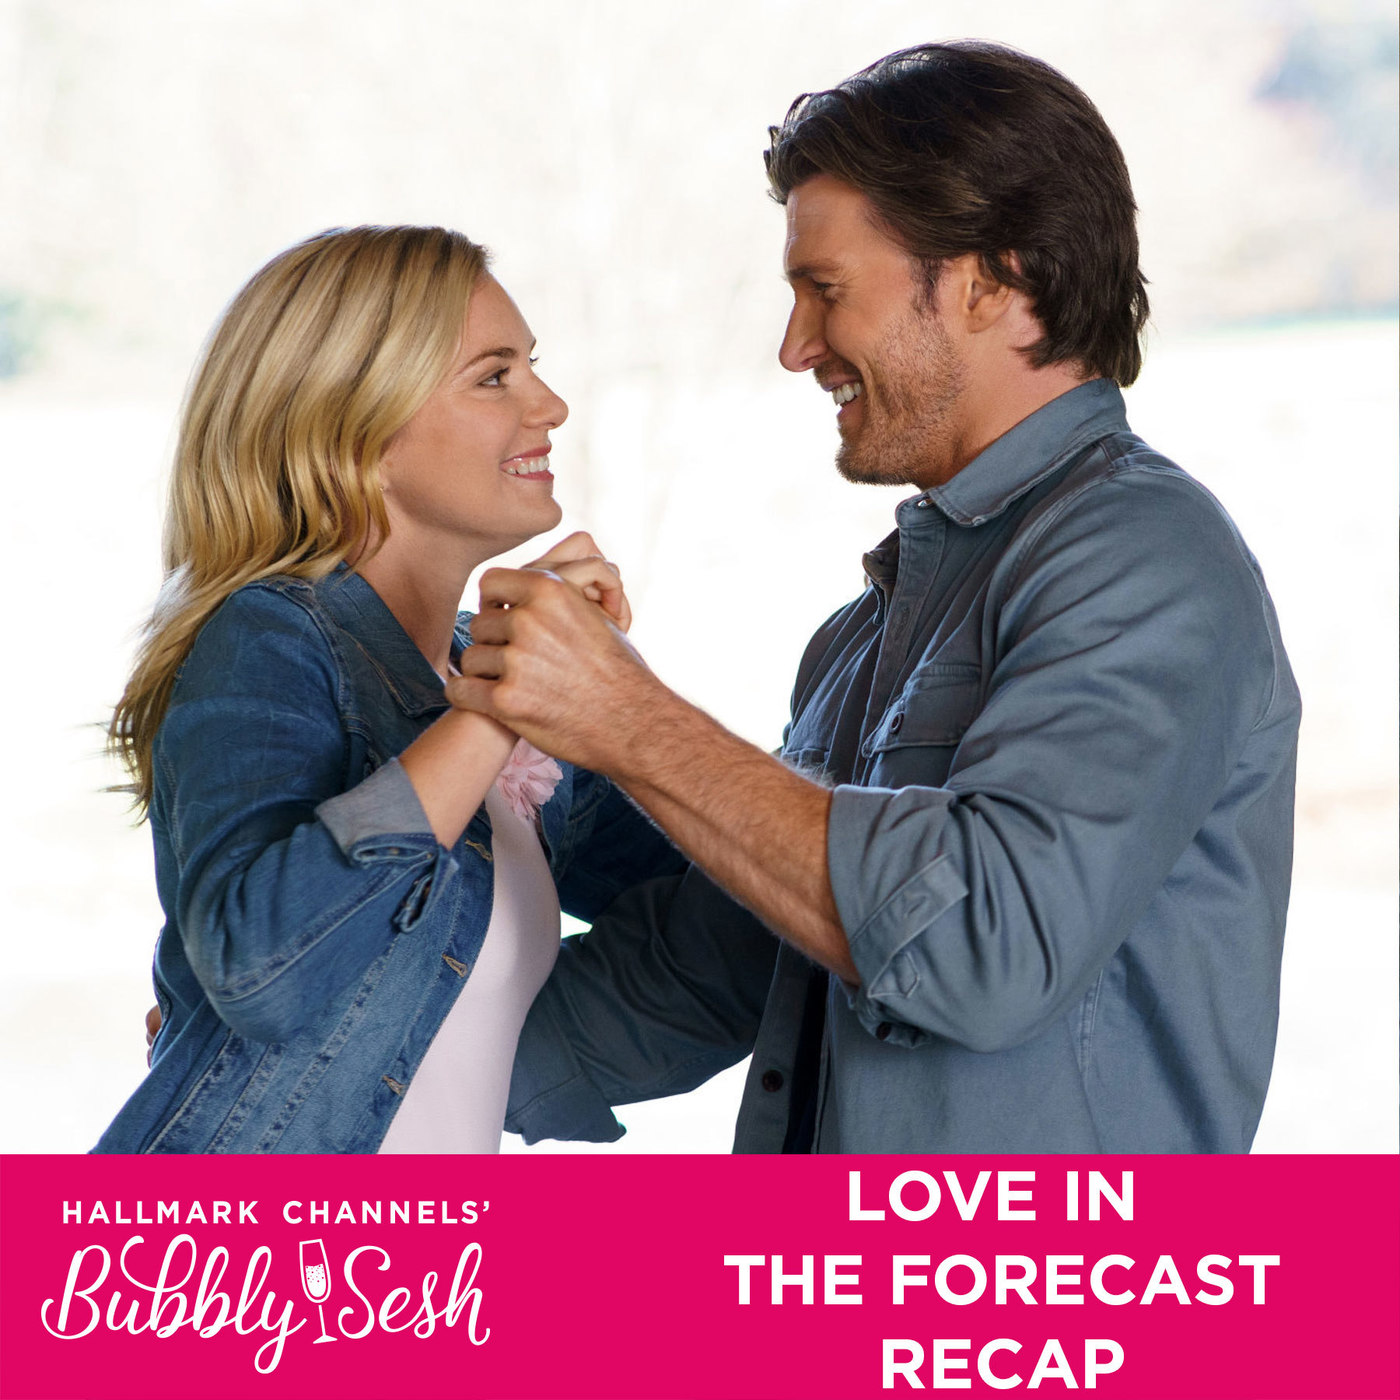 Love in the Forecast Recap